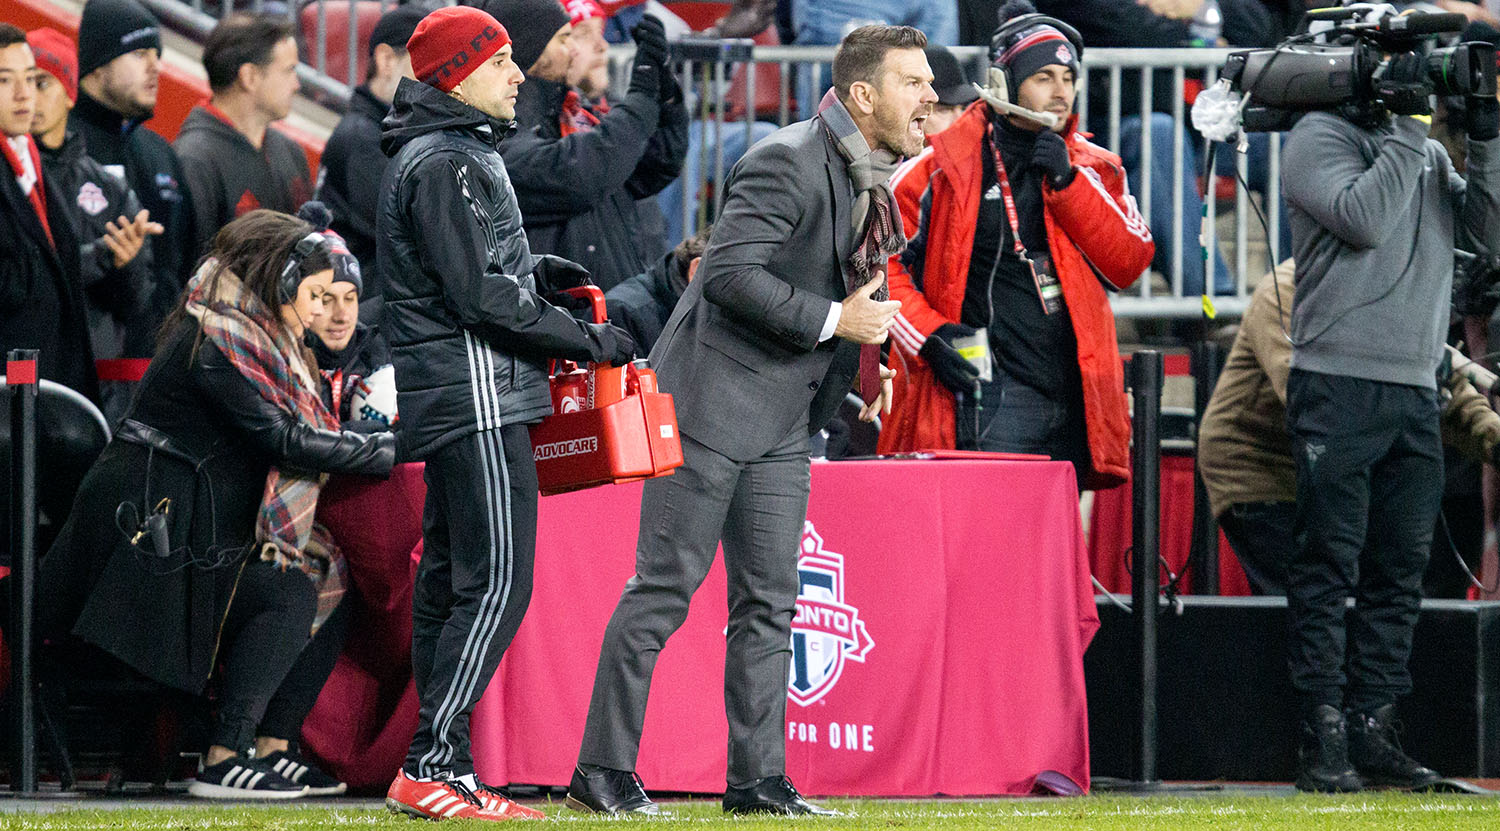 2017 Major League Soccer coach of the year Greg Vanney yelling instructions to his squad during the second half of the Eastern Conference Final at BMO Field in Toronto, Canada.Image by Dennis Marciniak of denMAR Media.